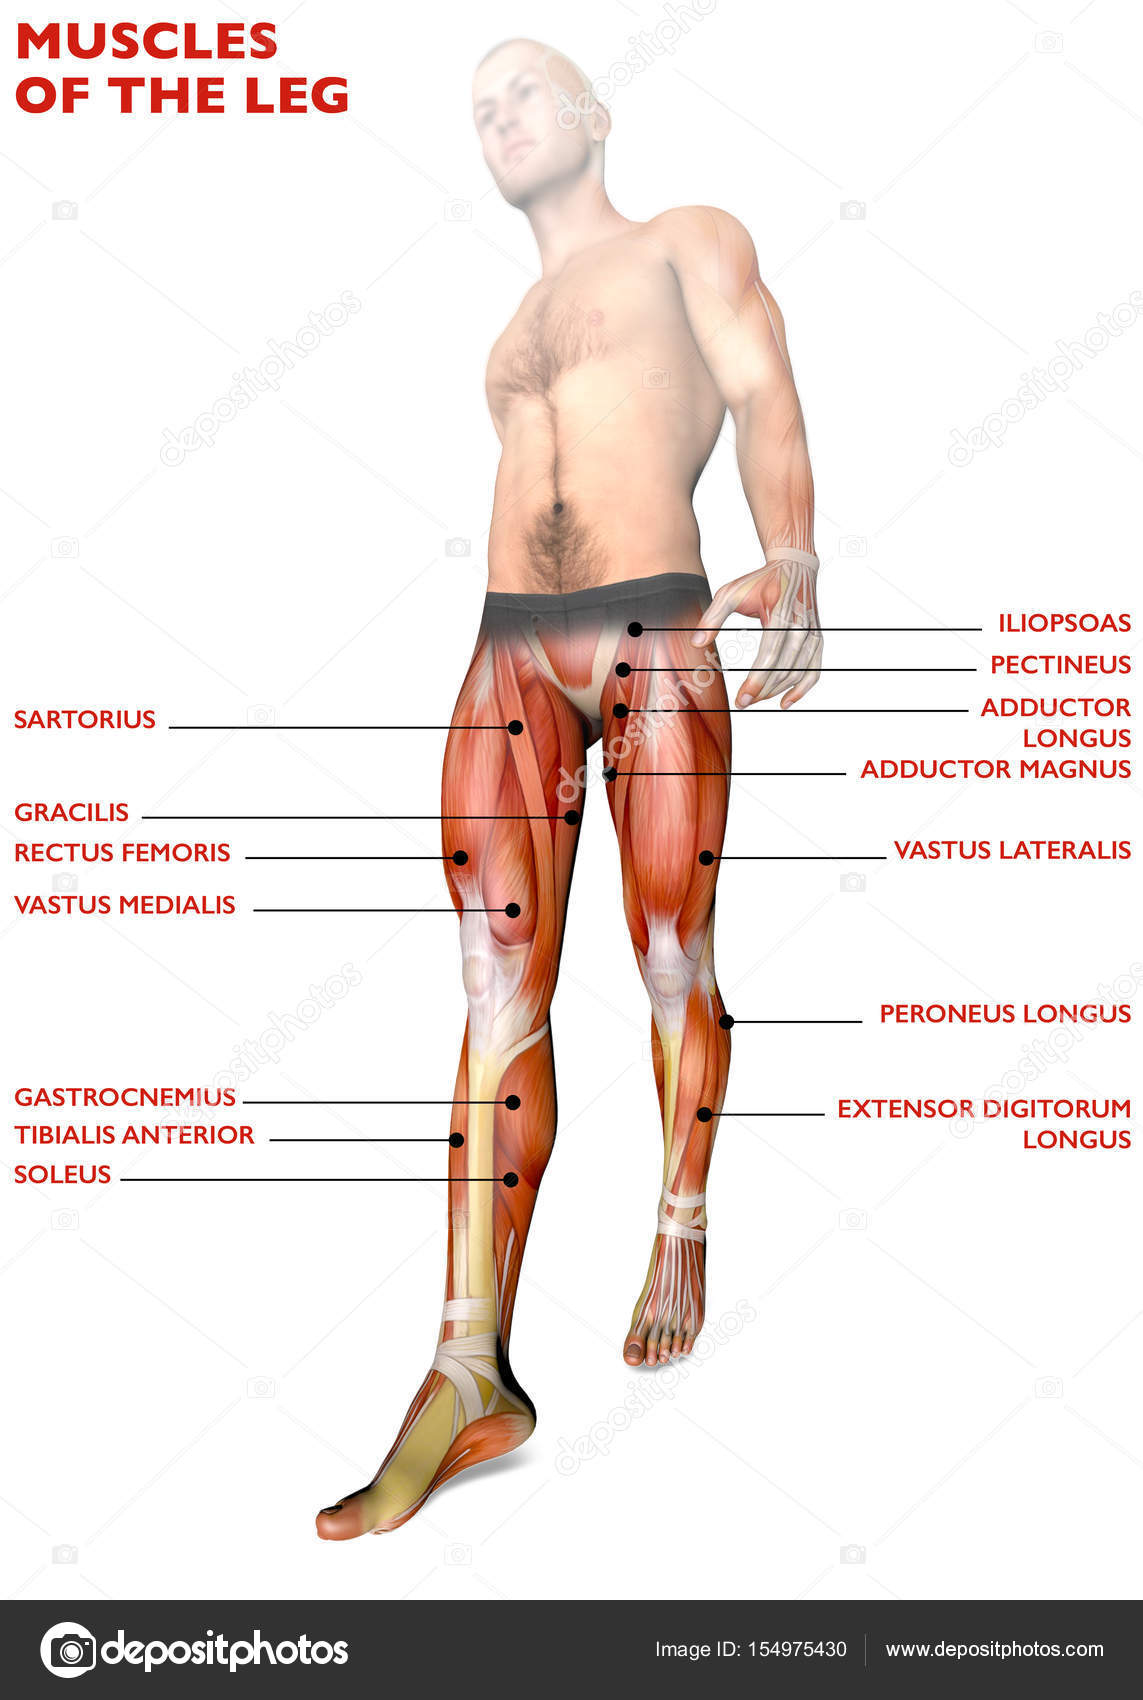 Leg muscles, human body, anatomy, muscular system, anatomy person ...